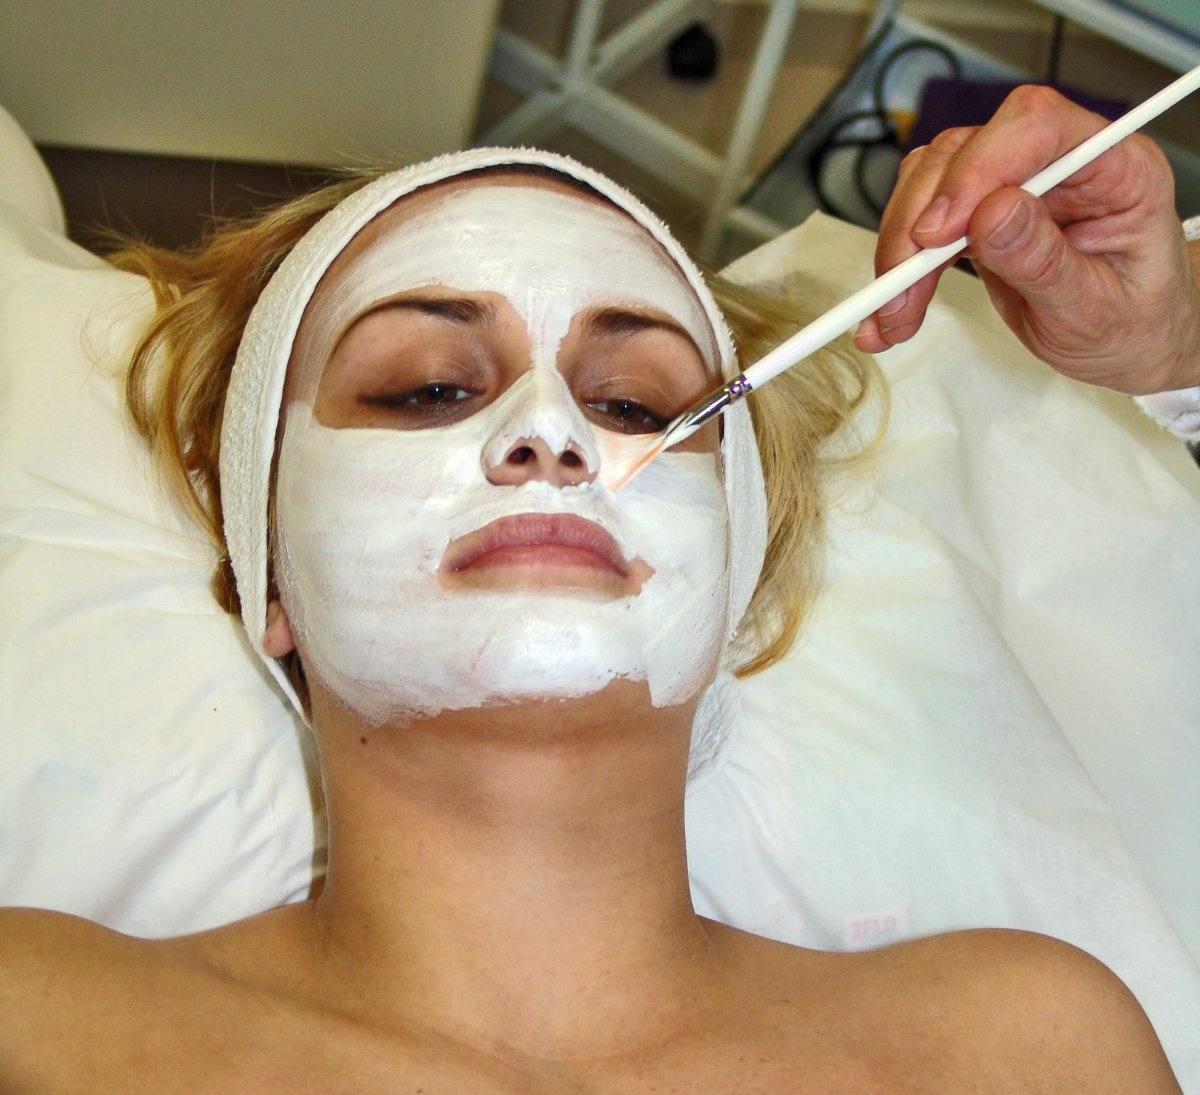 A face mask is easily made and applied at home, no need for having an expensive facial done at a beauty salon.